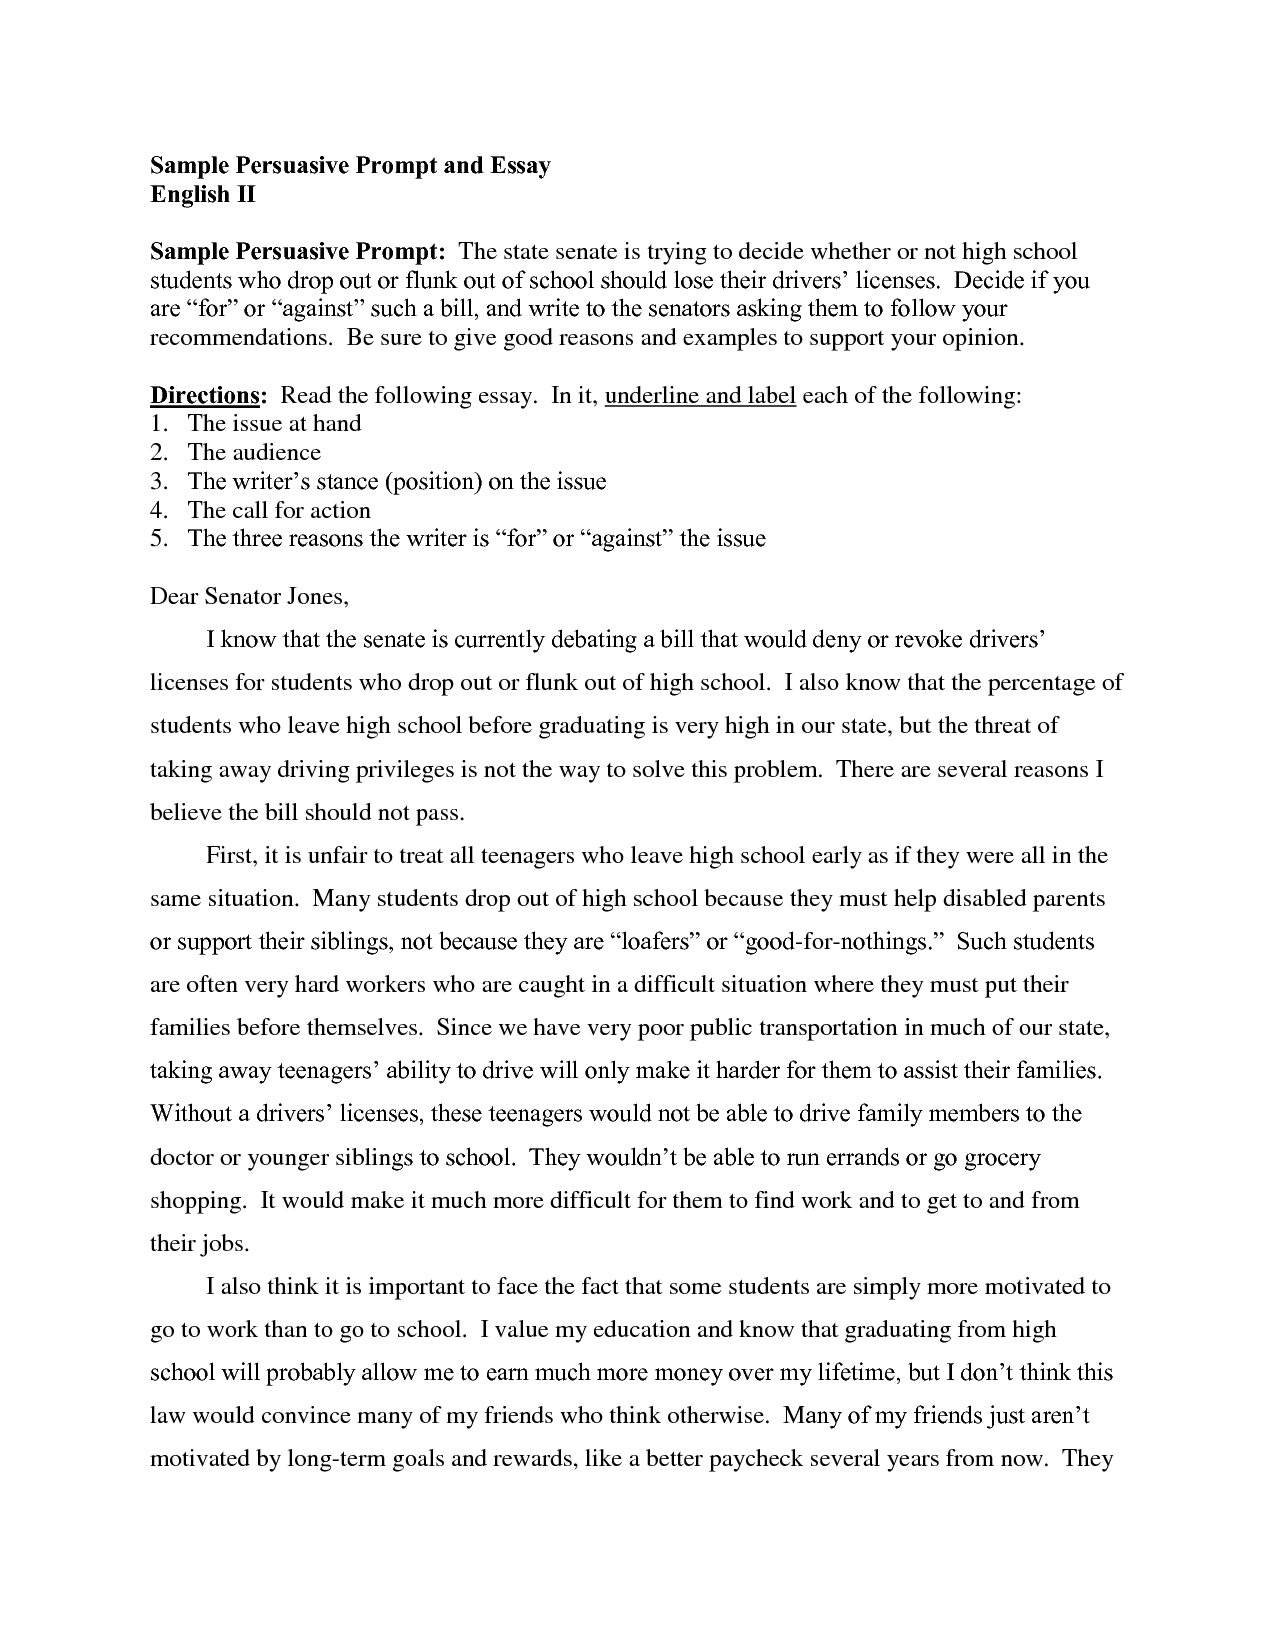 010 Research Paper Persuasive Essay Topics For High School Sample Ideas Highschool Students Good Prompt Funny Easy Fun List Of Seniors Writing English Staggering Full